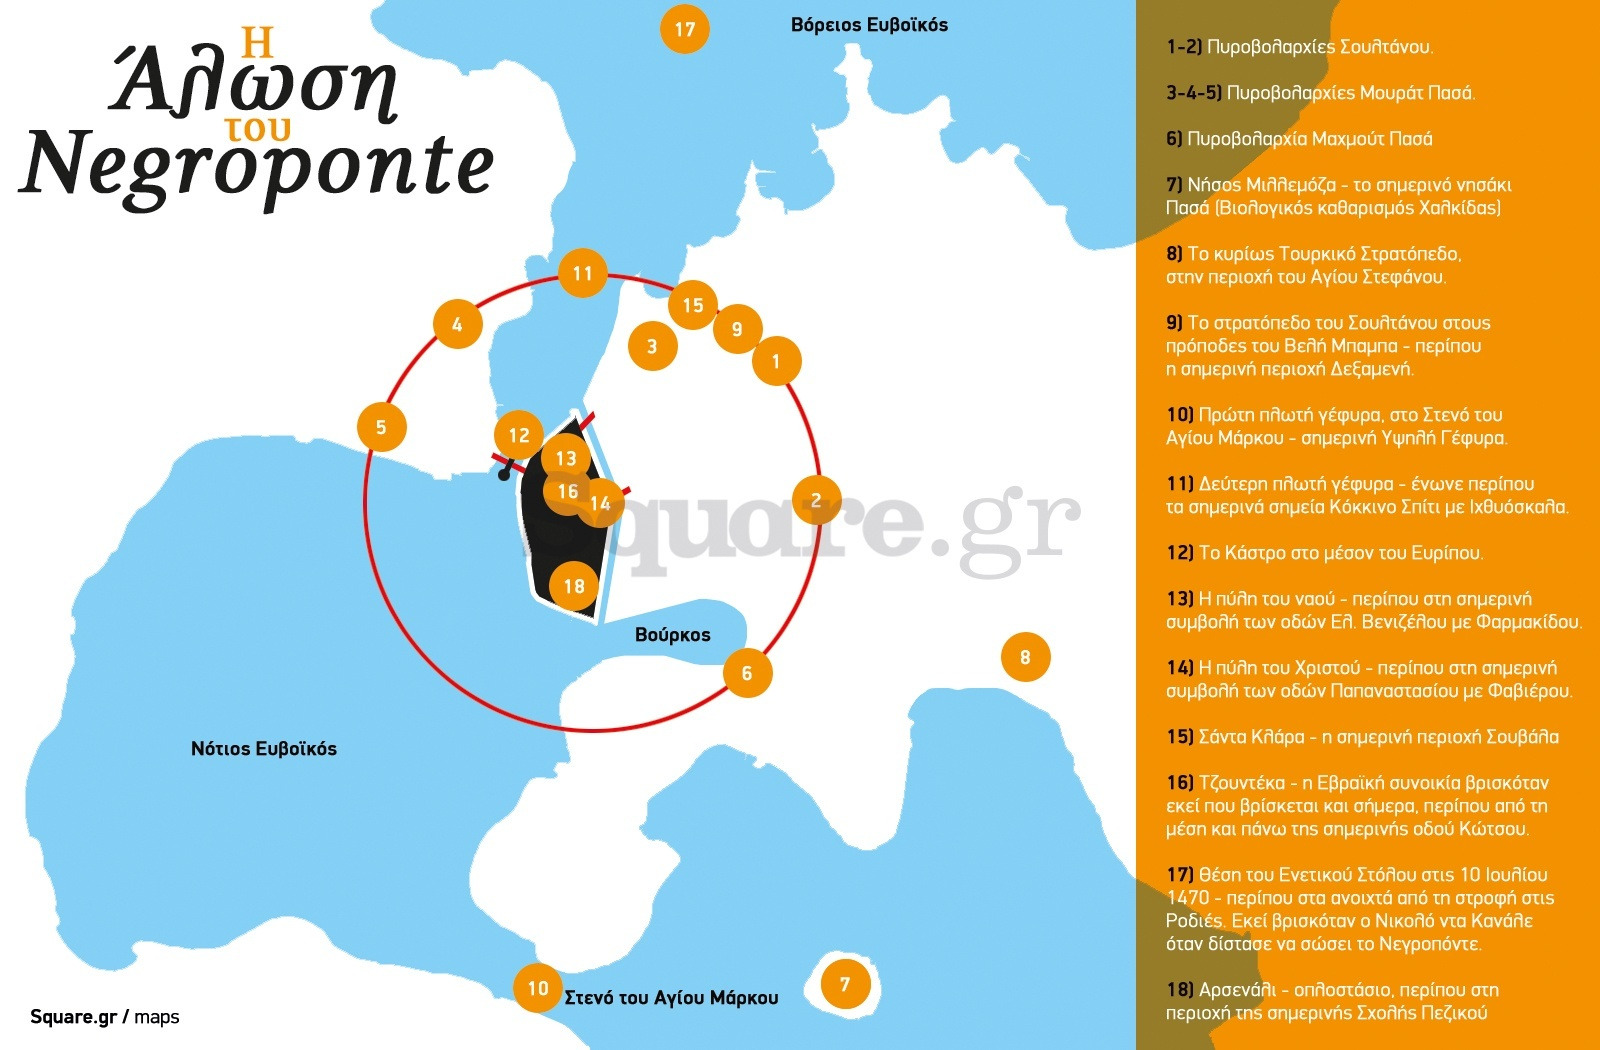 5-The-fall-of-negroponte-map